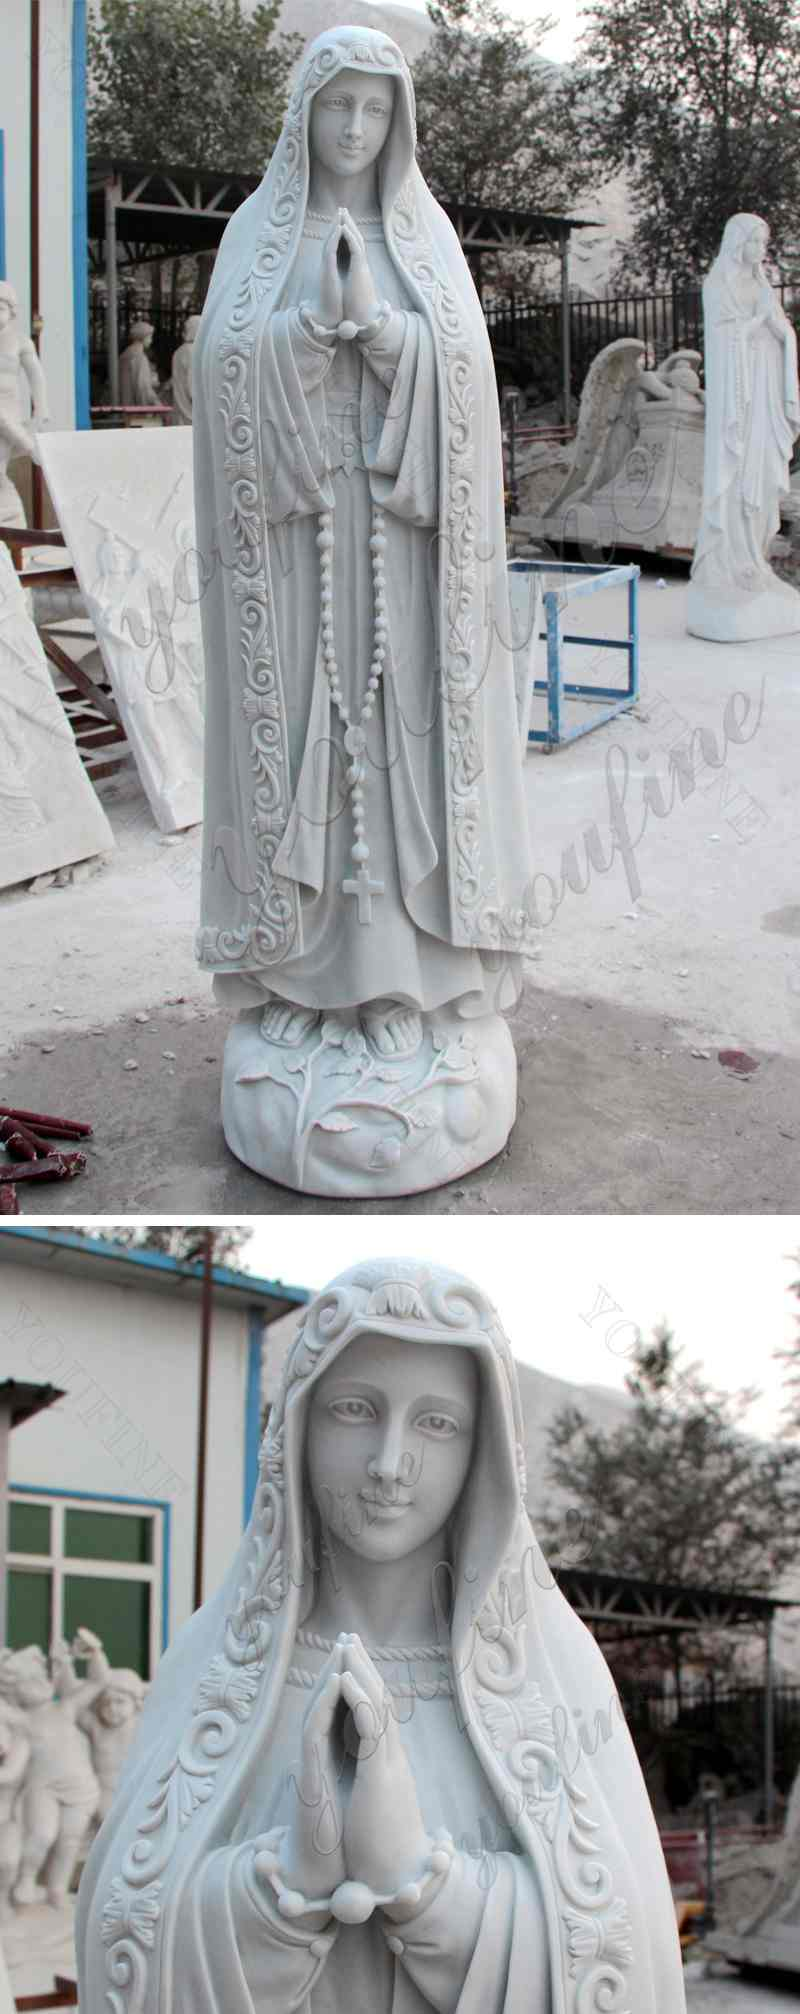 Our Lady of Fatima Marble Statue Virgin Mary Pilgrim Religious Statue for Sale CHS-263 Details